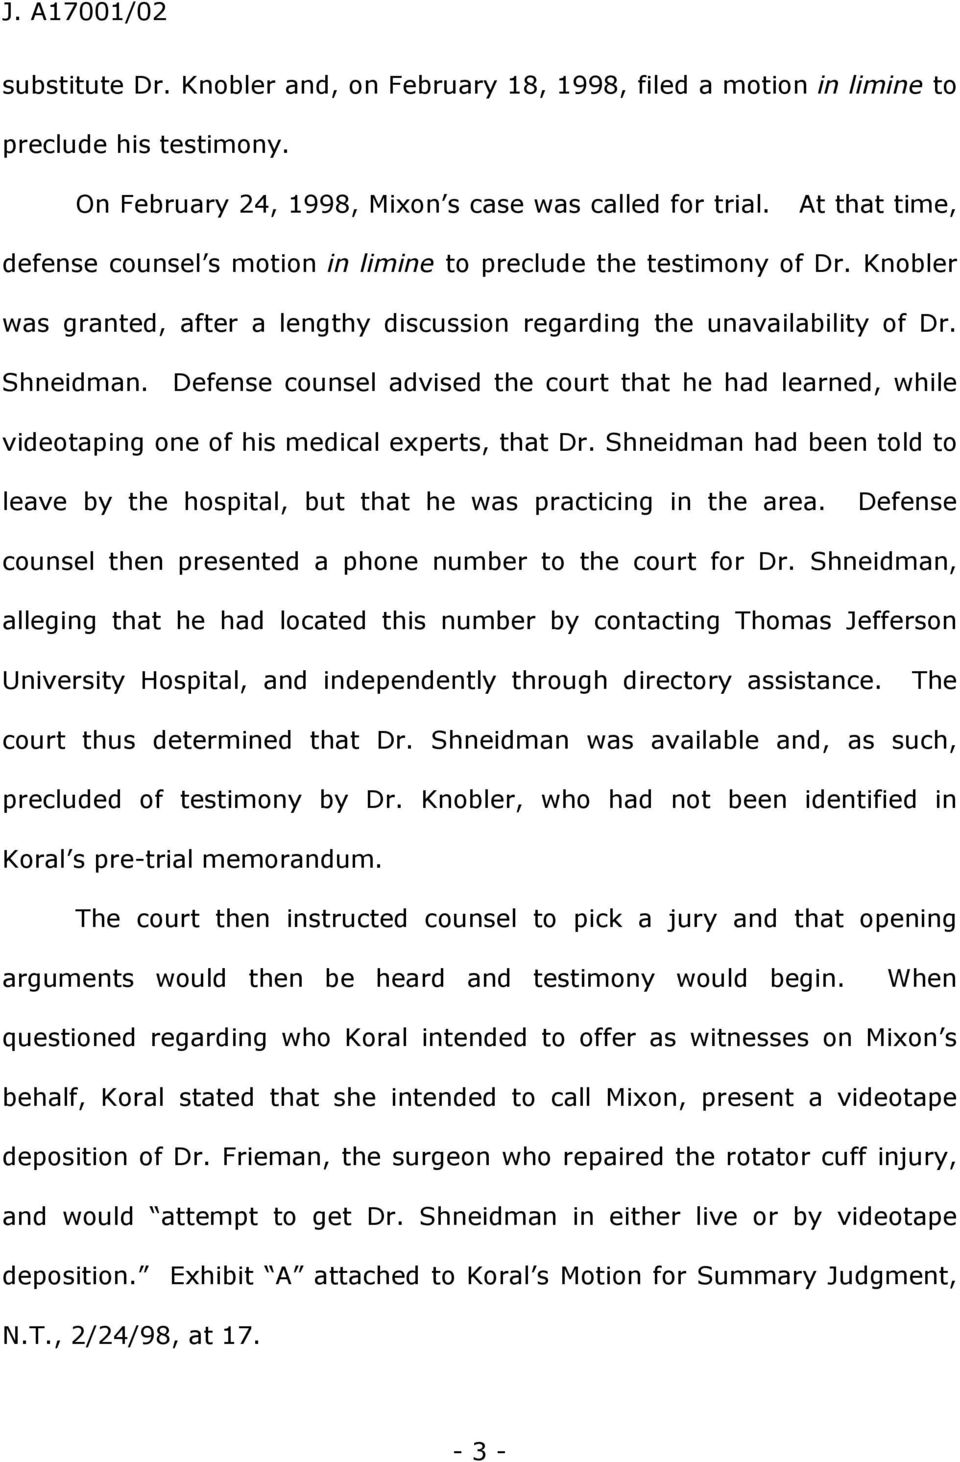 Defense counsel advised the court that he had learned, while videotaping one of his medical experts, that Dr. Shneidman had been told to leave by the hospital, but that he was practicing in the area.